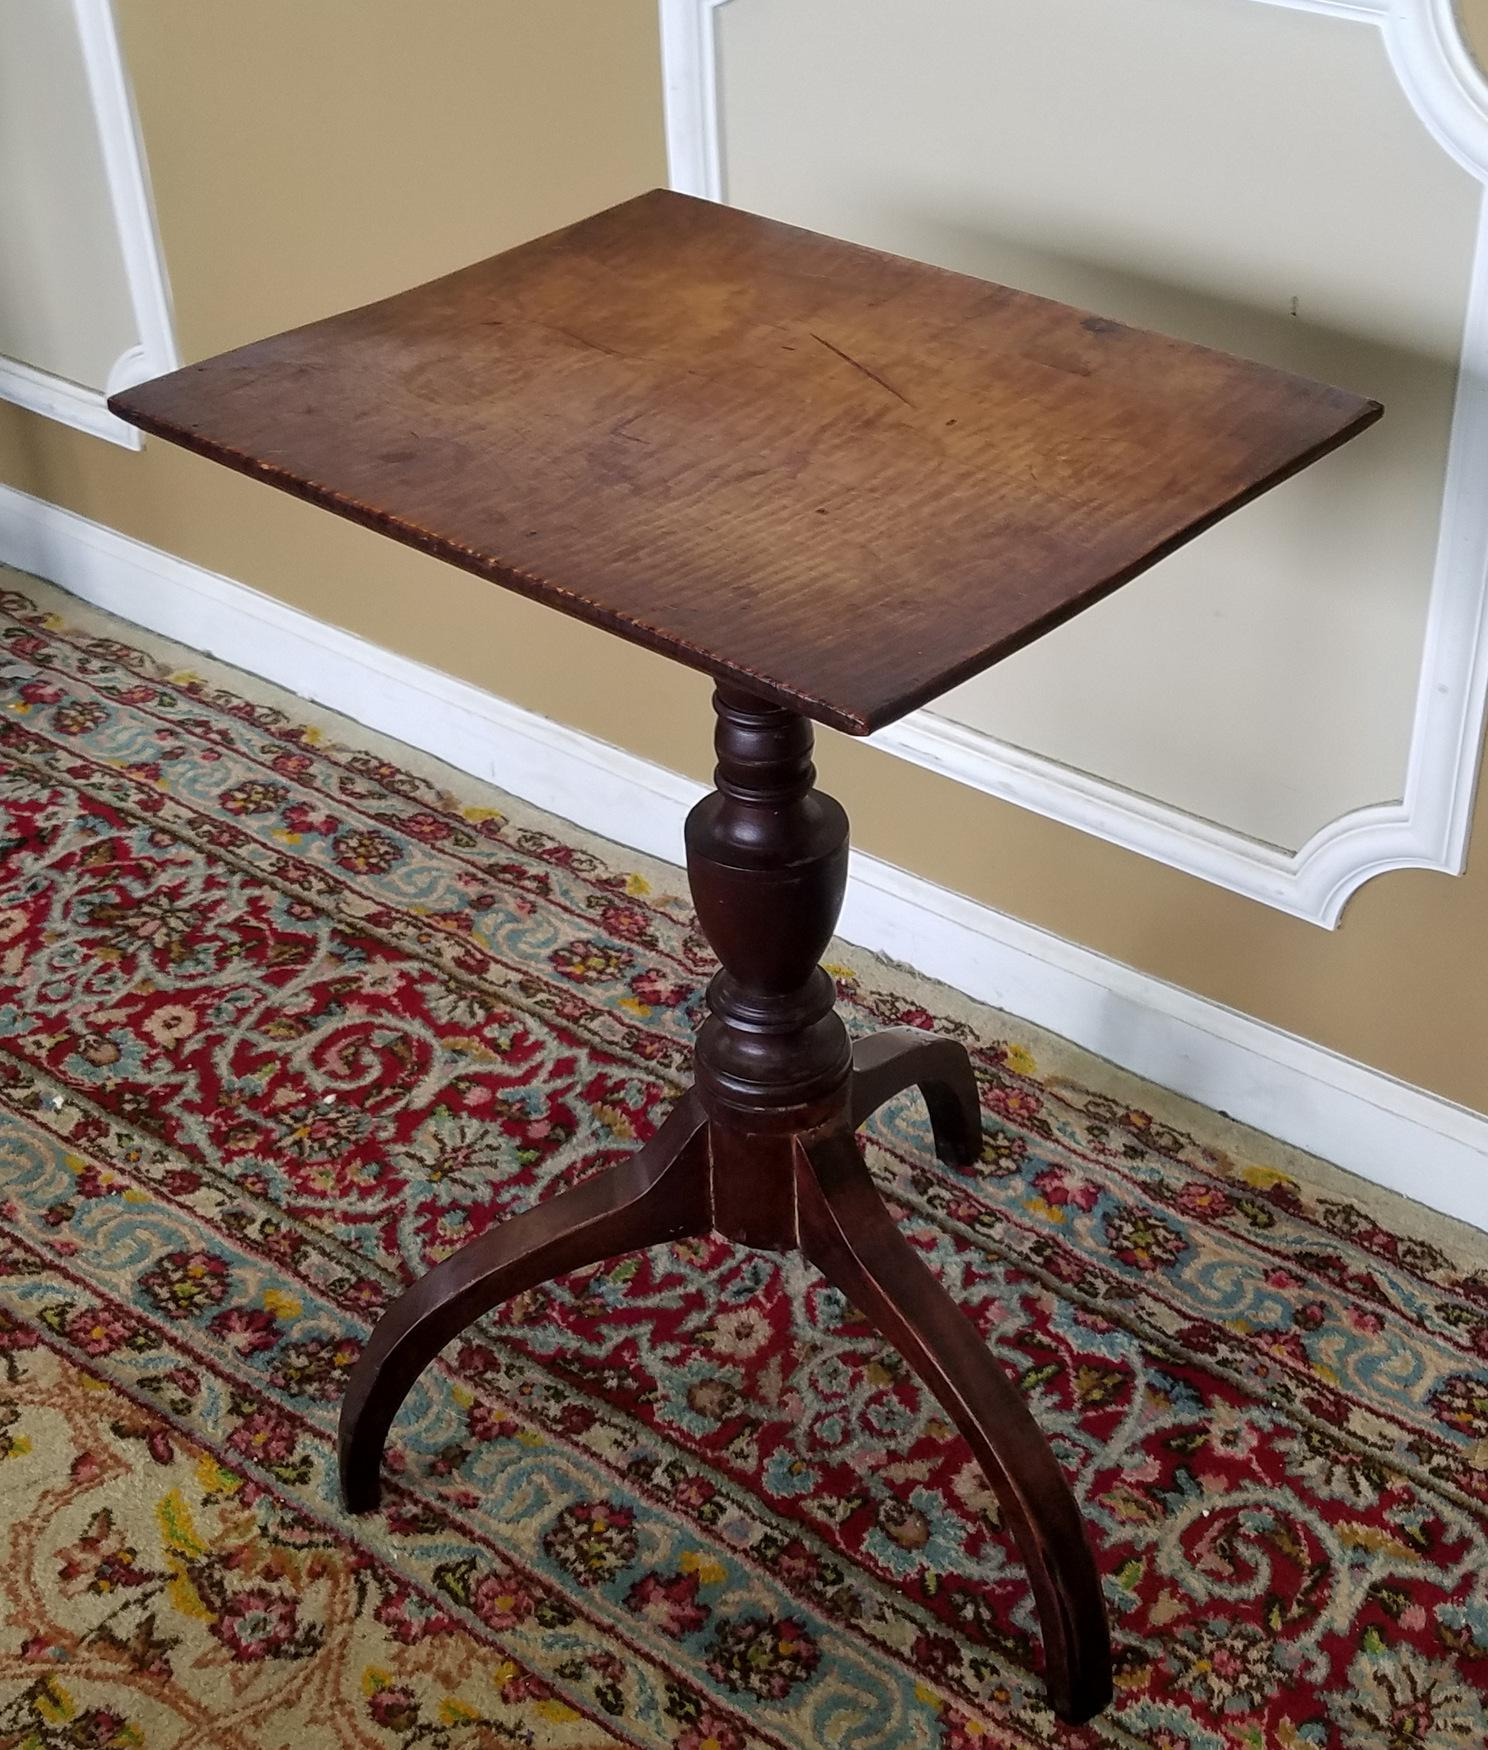 1810 Antique American Federal Tiger Maple Candle Stand Table   Image 3 Of 8